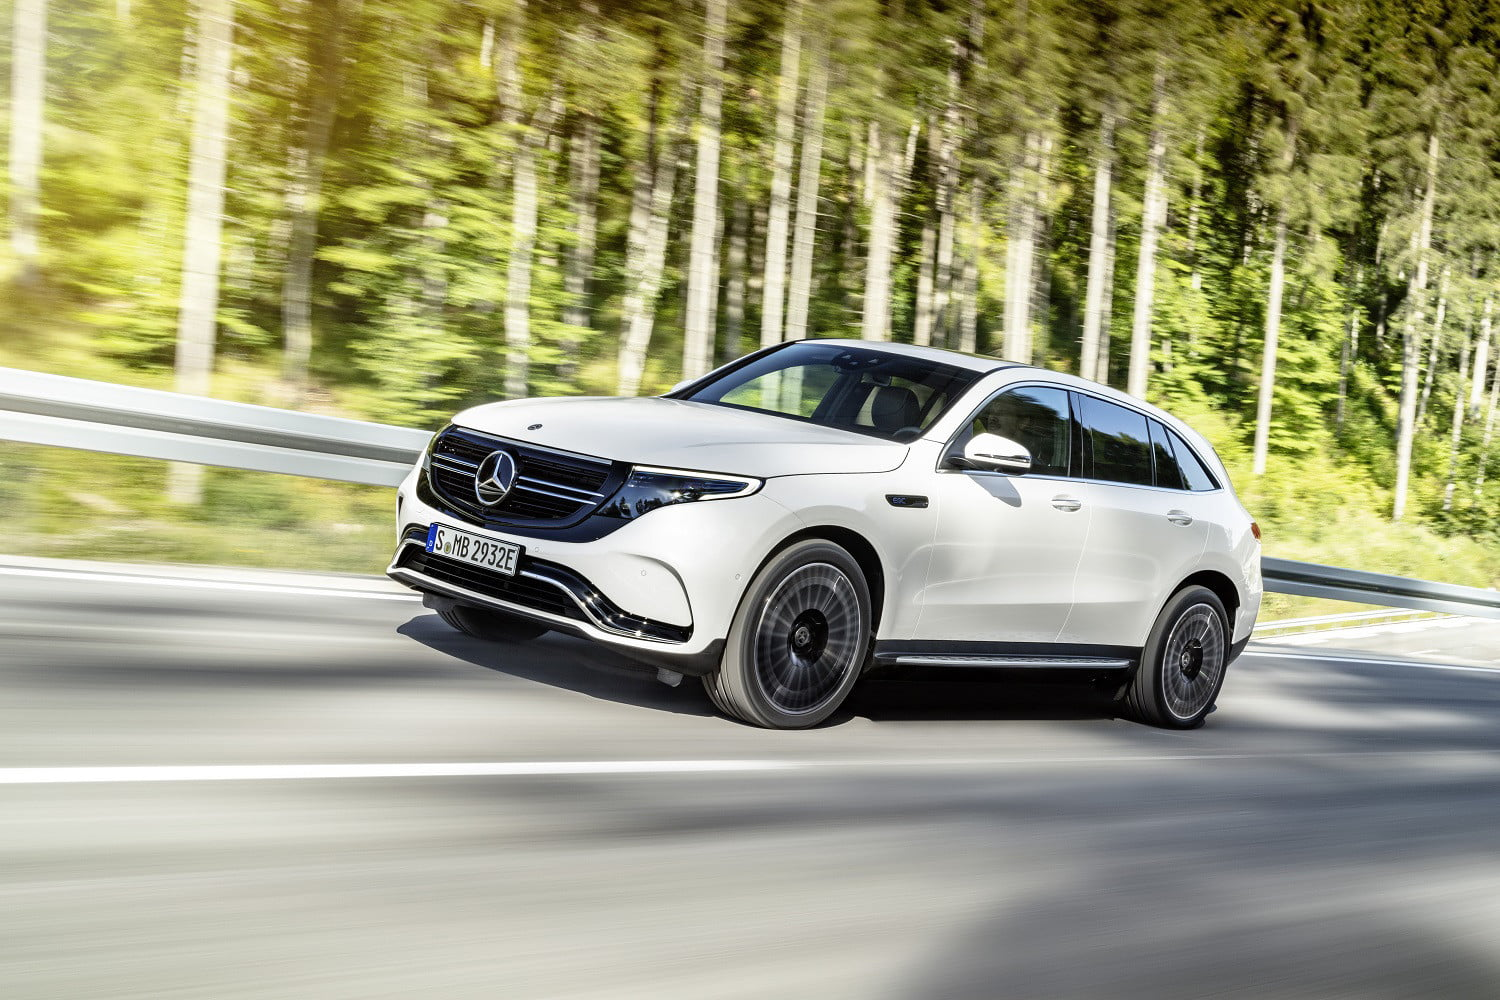 Kết quả hình ảnh cho The 2020 Mercedes-Benz EQC is expected to make its US debut at CES